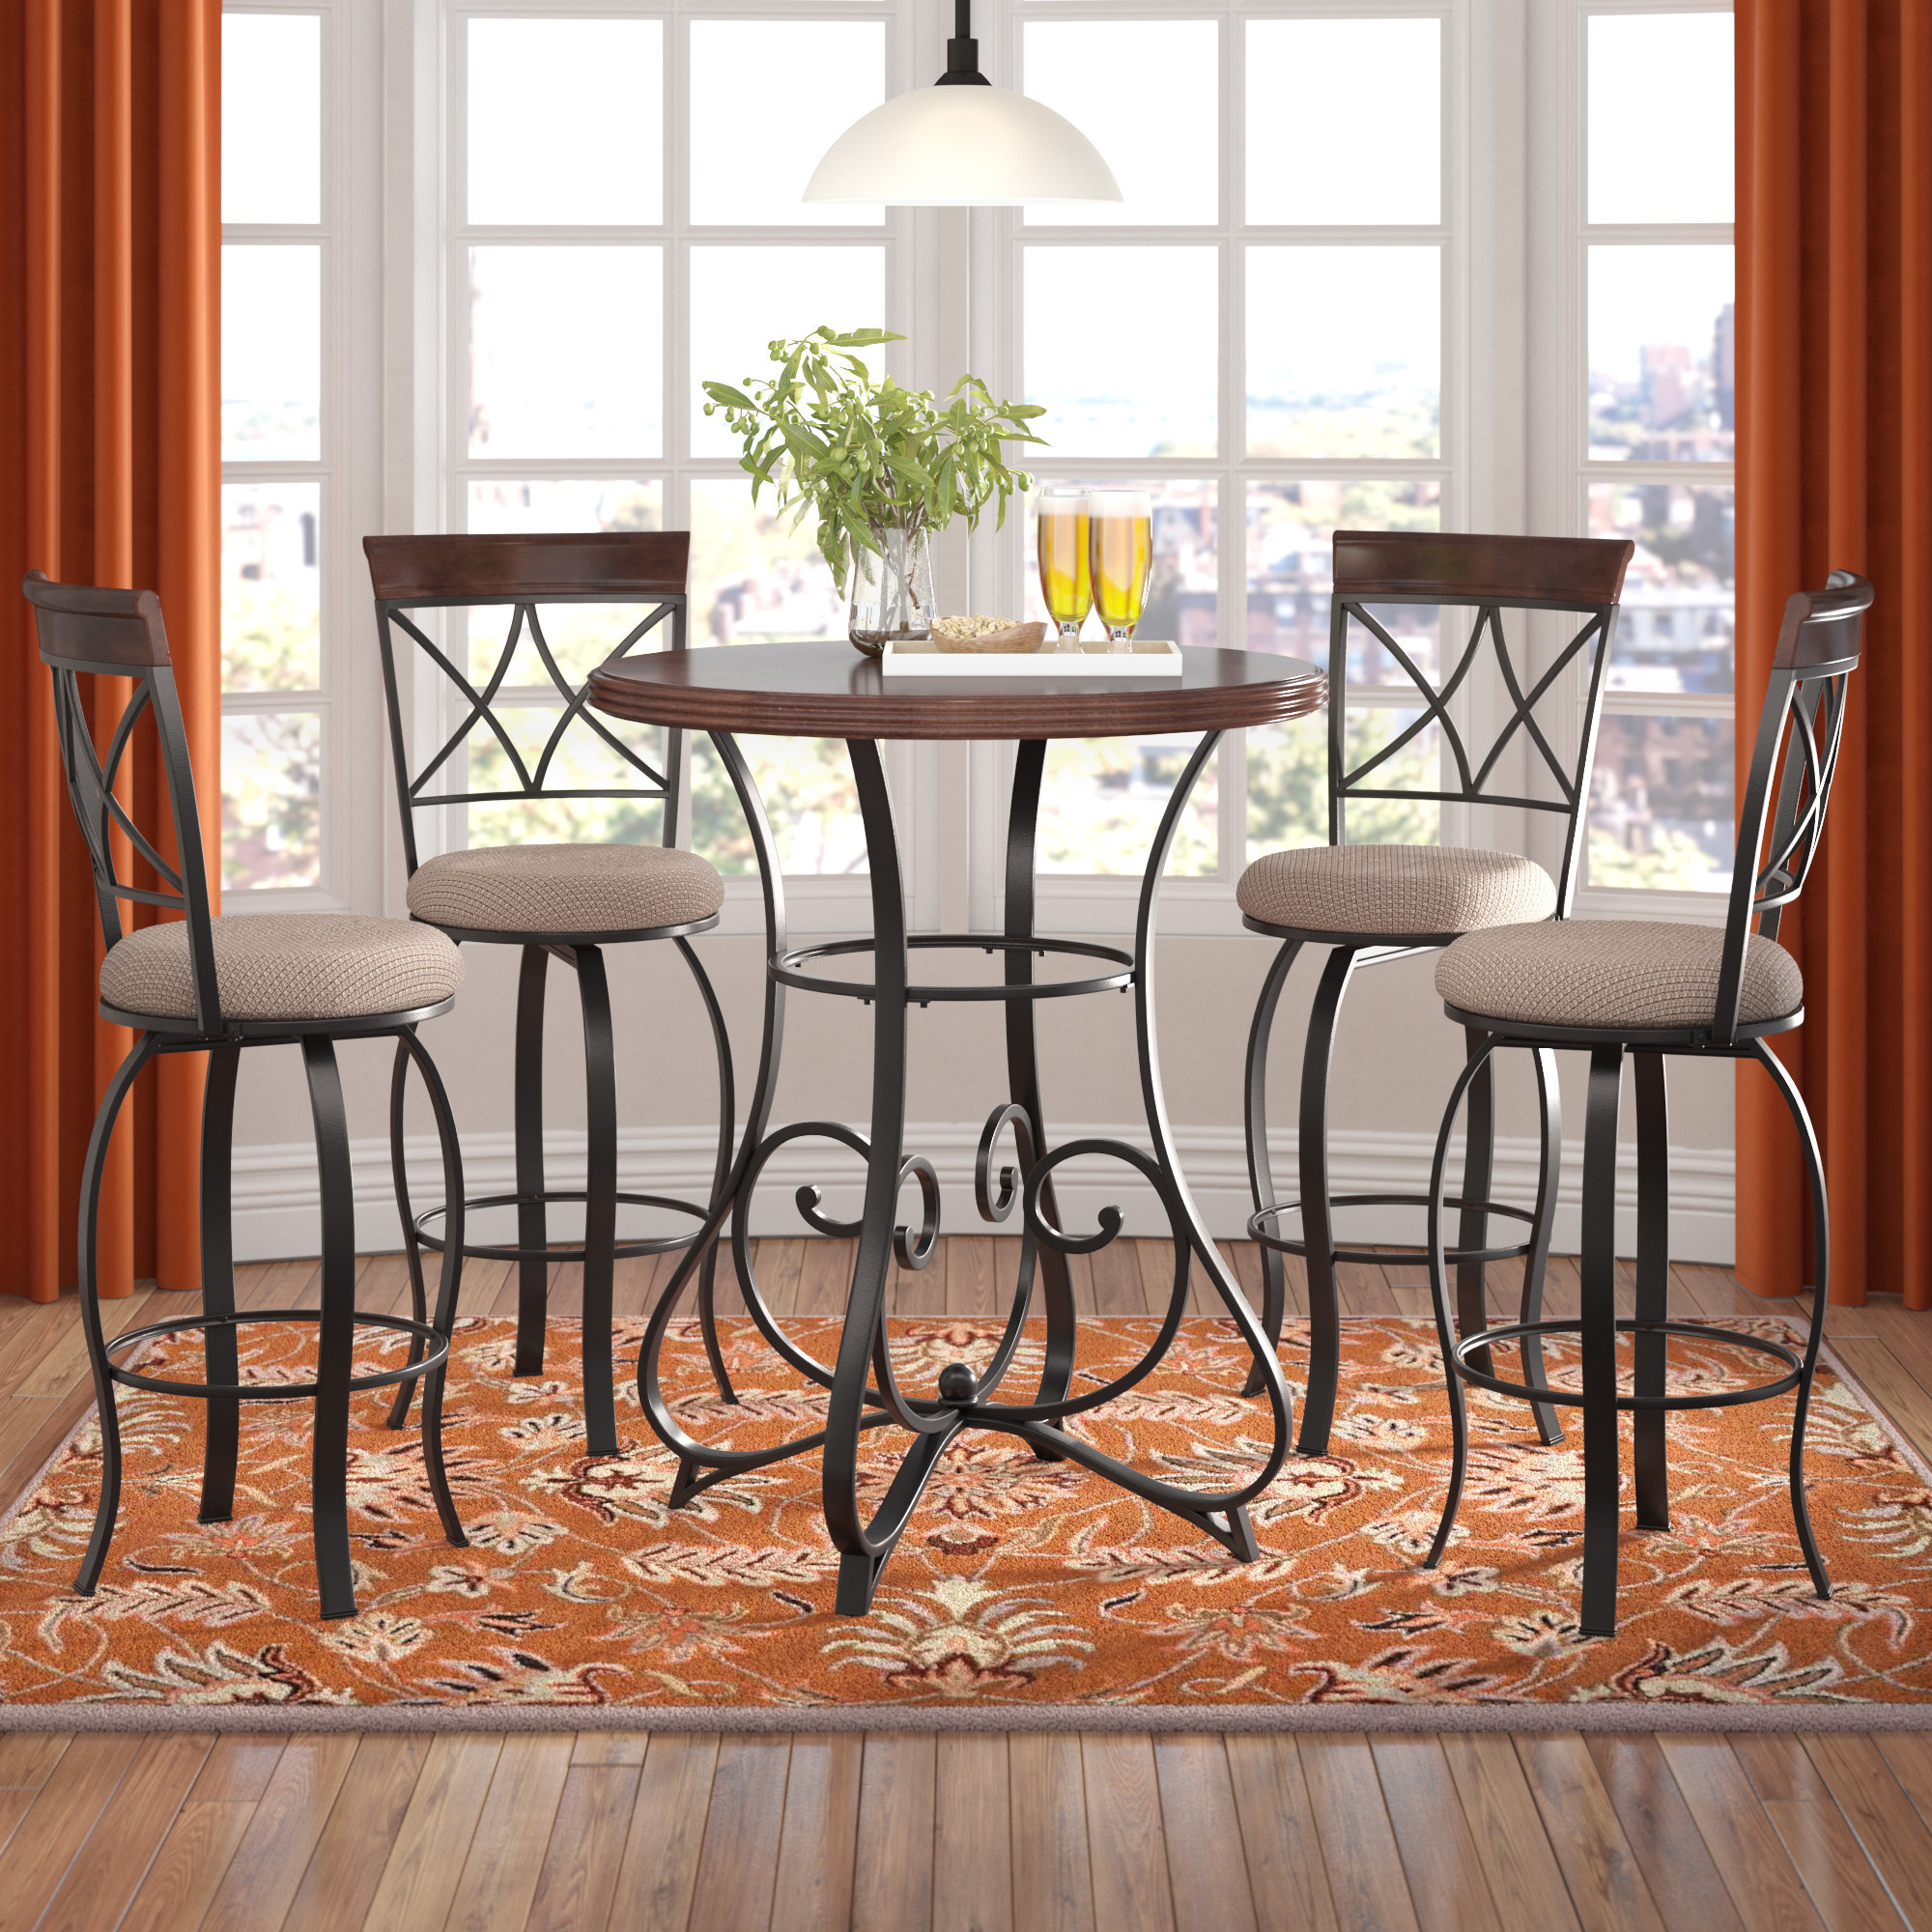 Red Barrel Studio Villeda 5 Piece Pub Table Set With Regard To Fashionable Biggs 5 Piece Counter Height Solid Wood Dining Sets (Set Of 5) (View 16 of 20)